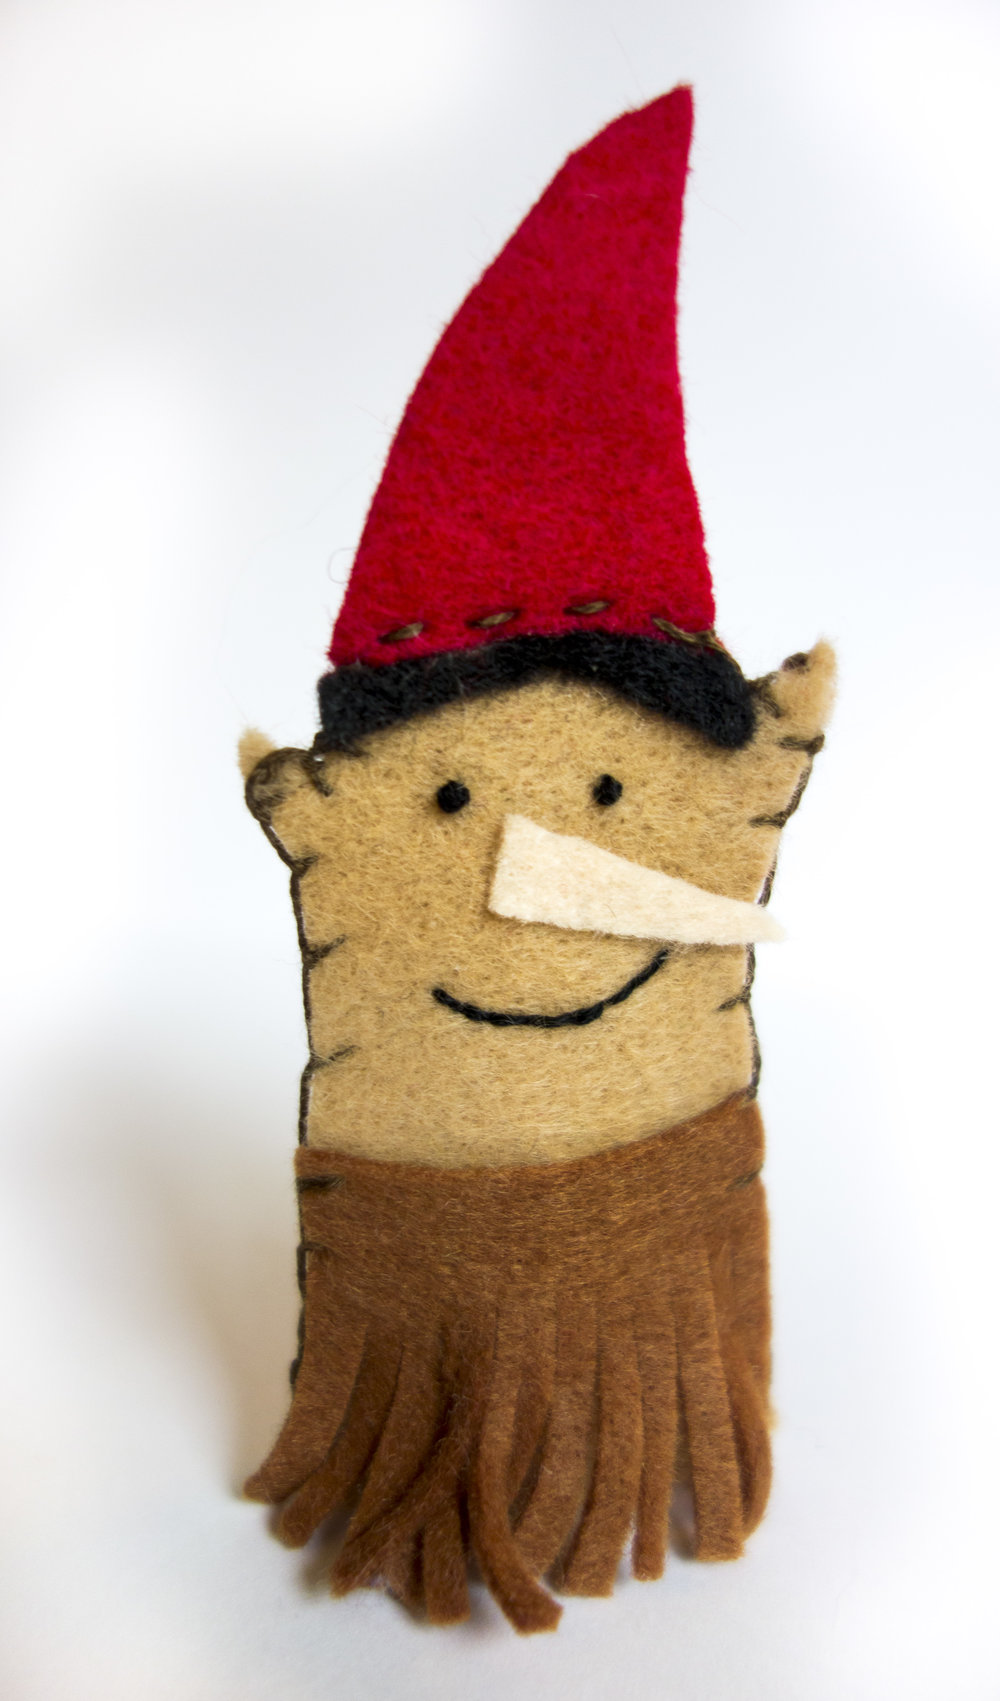 And from my own site, an adorable wood imp finger puppet tutorial!